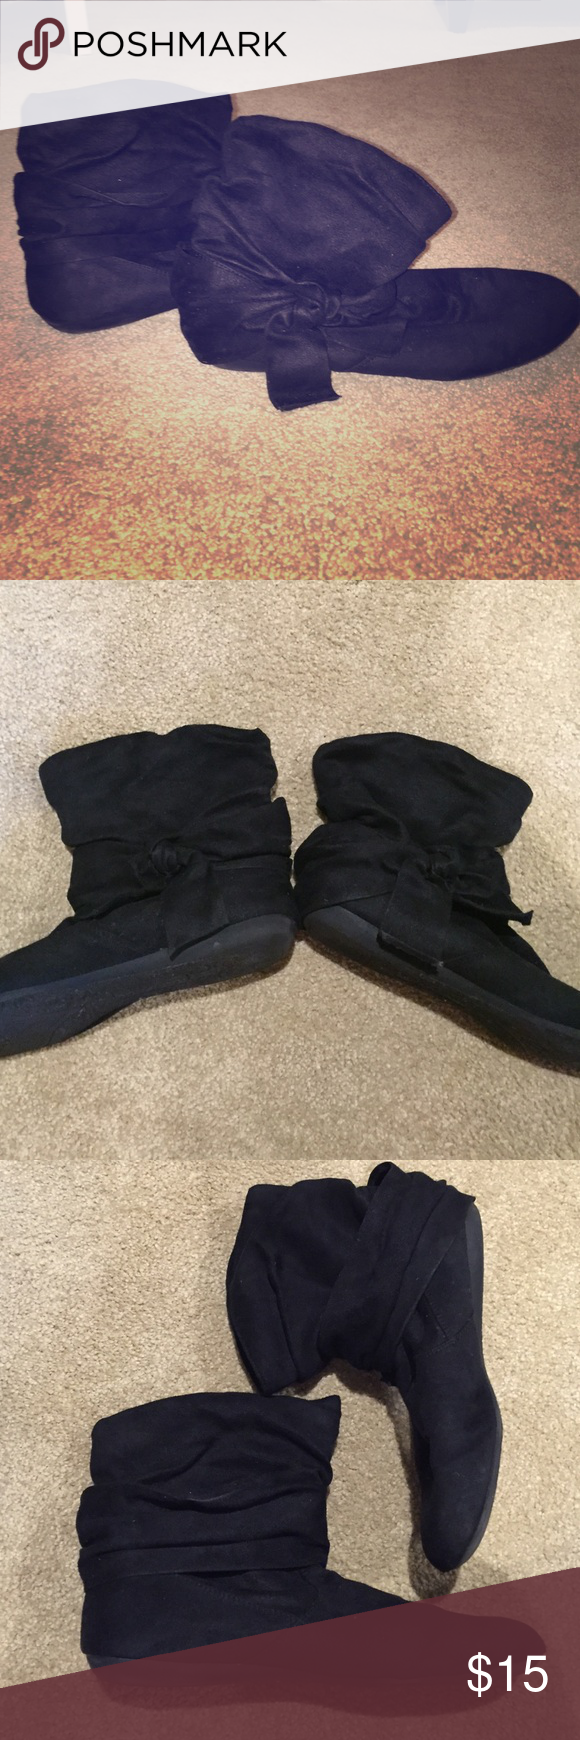 👢Rampage little black bow booties Adorable soft faux suede flat booties perfect for the fall and winter. Minor evidence of wear as pictured. Well loved and cared for. Cute bow on the outer side of each boot. Rampage Shoes Ankle Boots & Booties